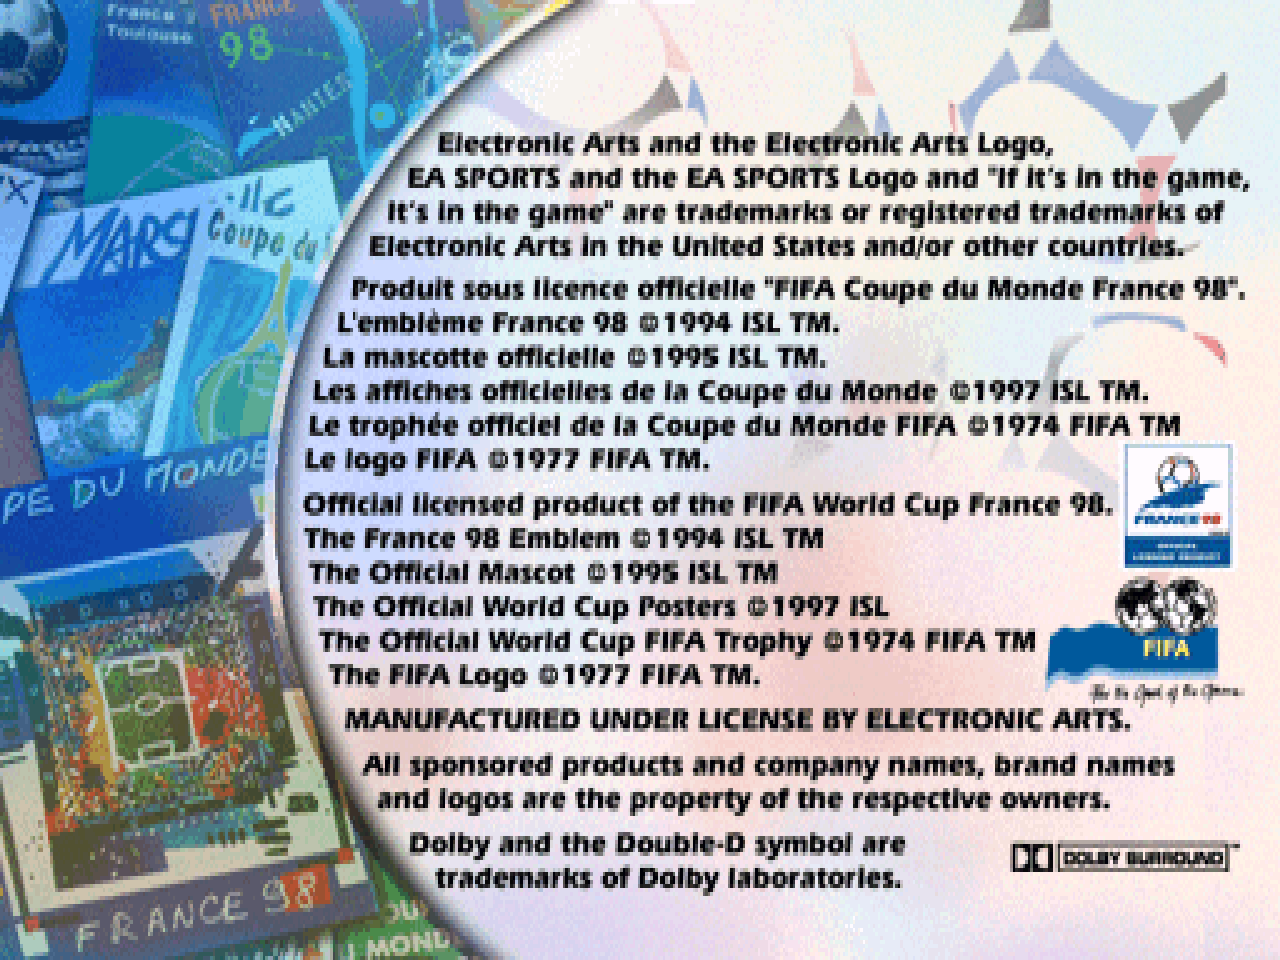 https://s3.eu-west-3.amazonaws.com/games.anthony-dessalles.com/World Cup 98 PS1 2020 - Screenshots/World Cup 98-201123-202019.png